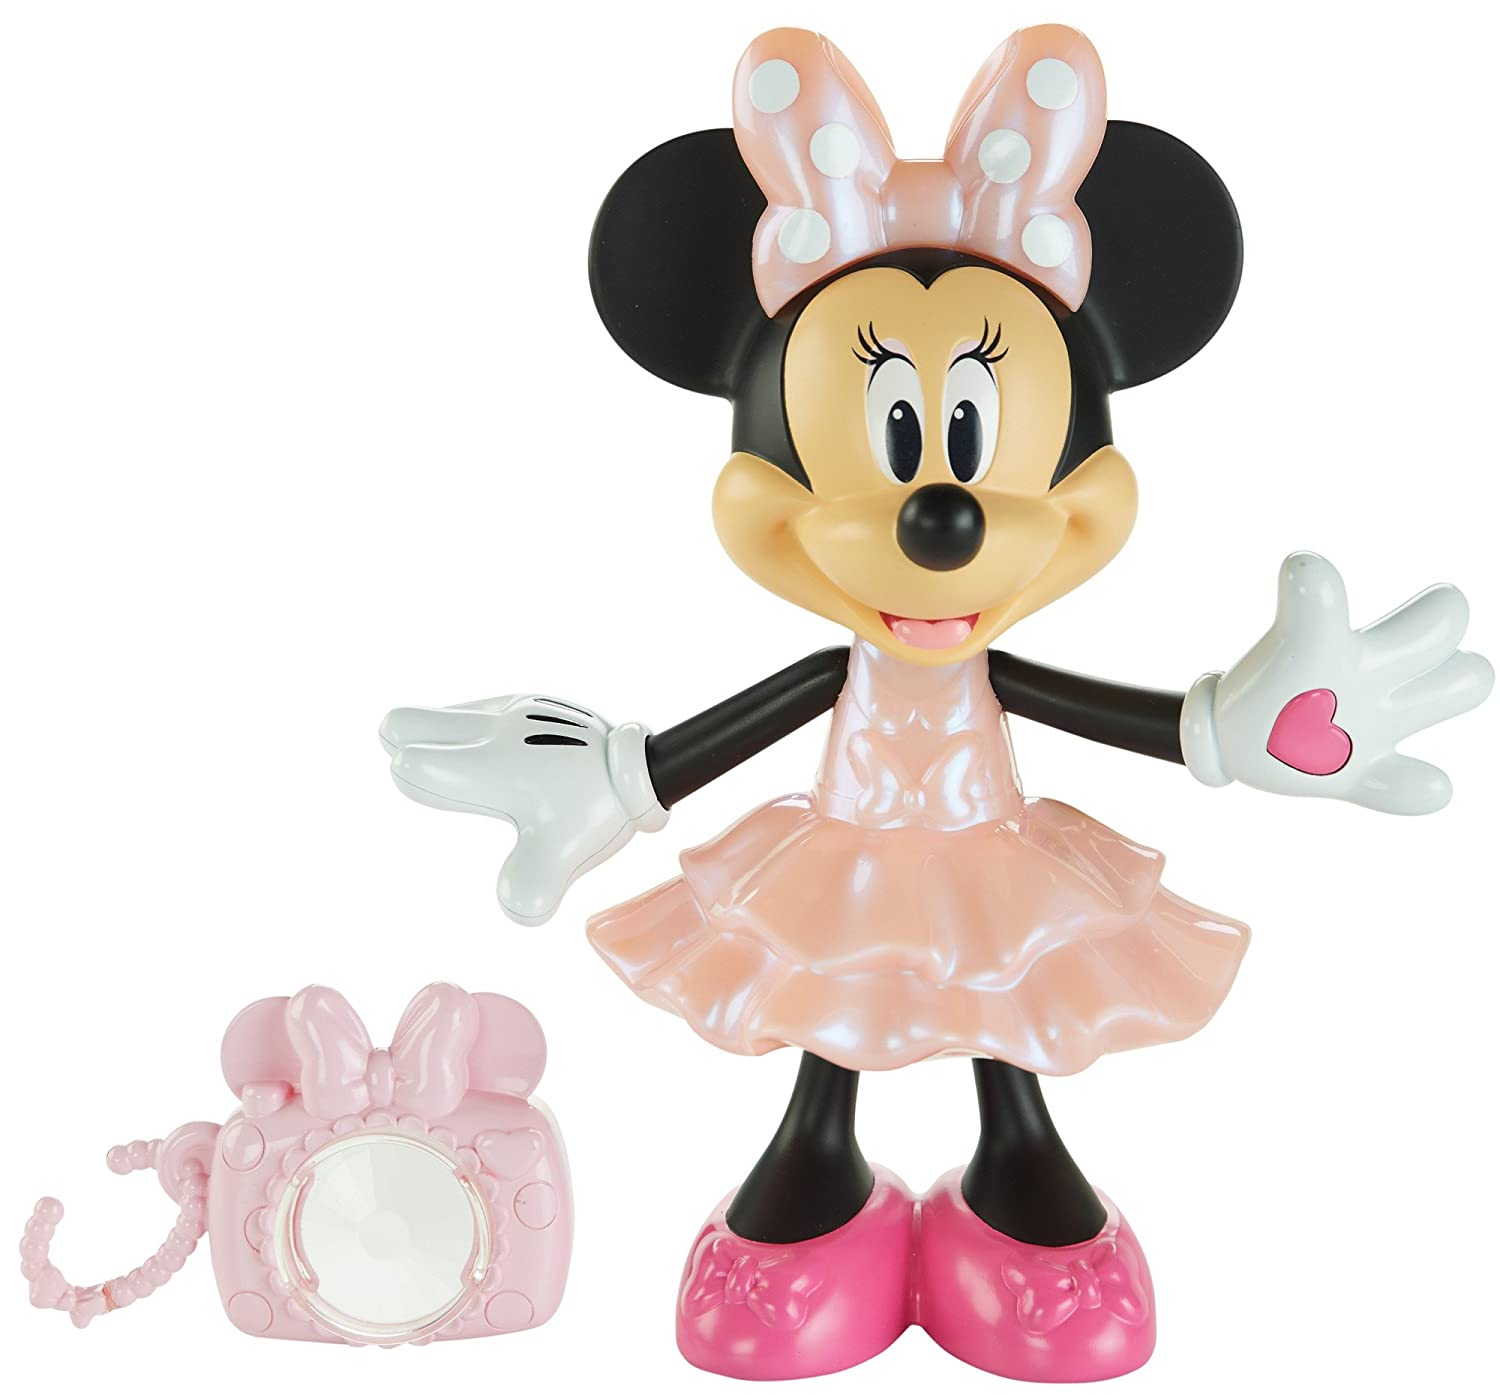 Minnie Mouse - Muneca Minnie con Luces (Cefa Toys CJG77)